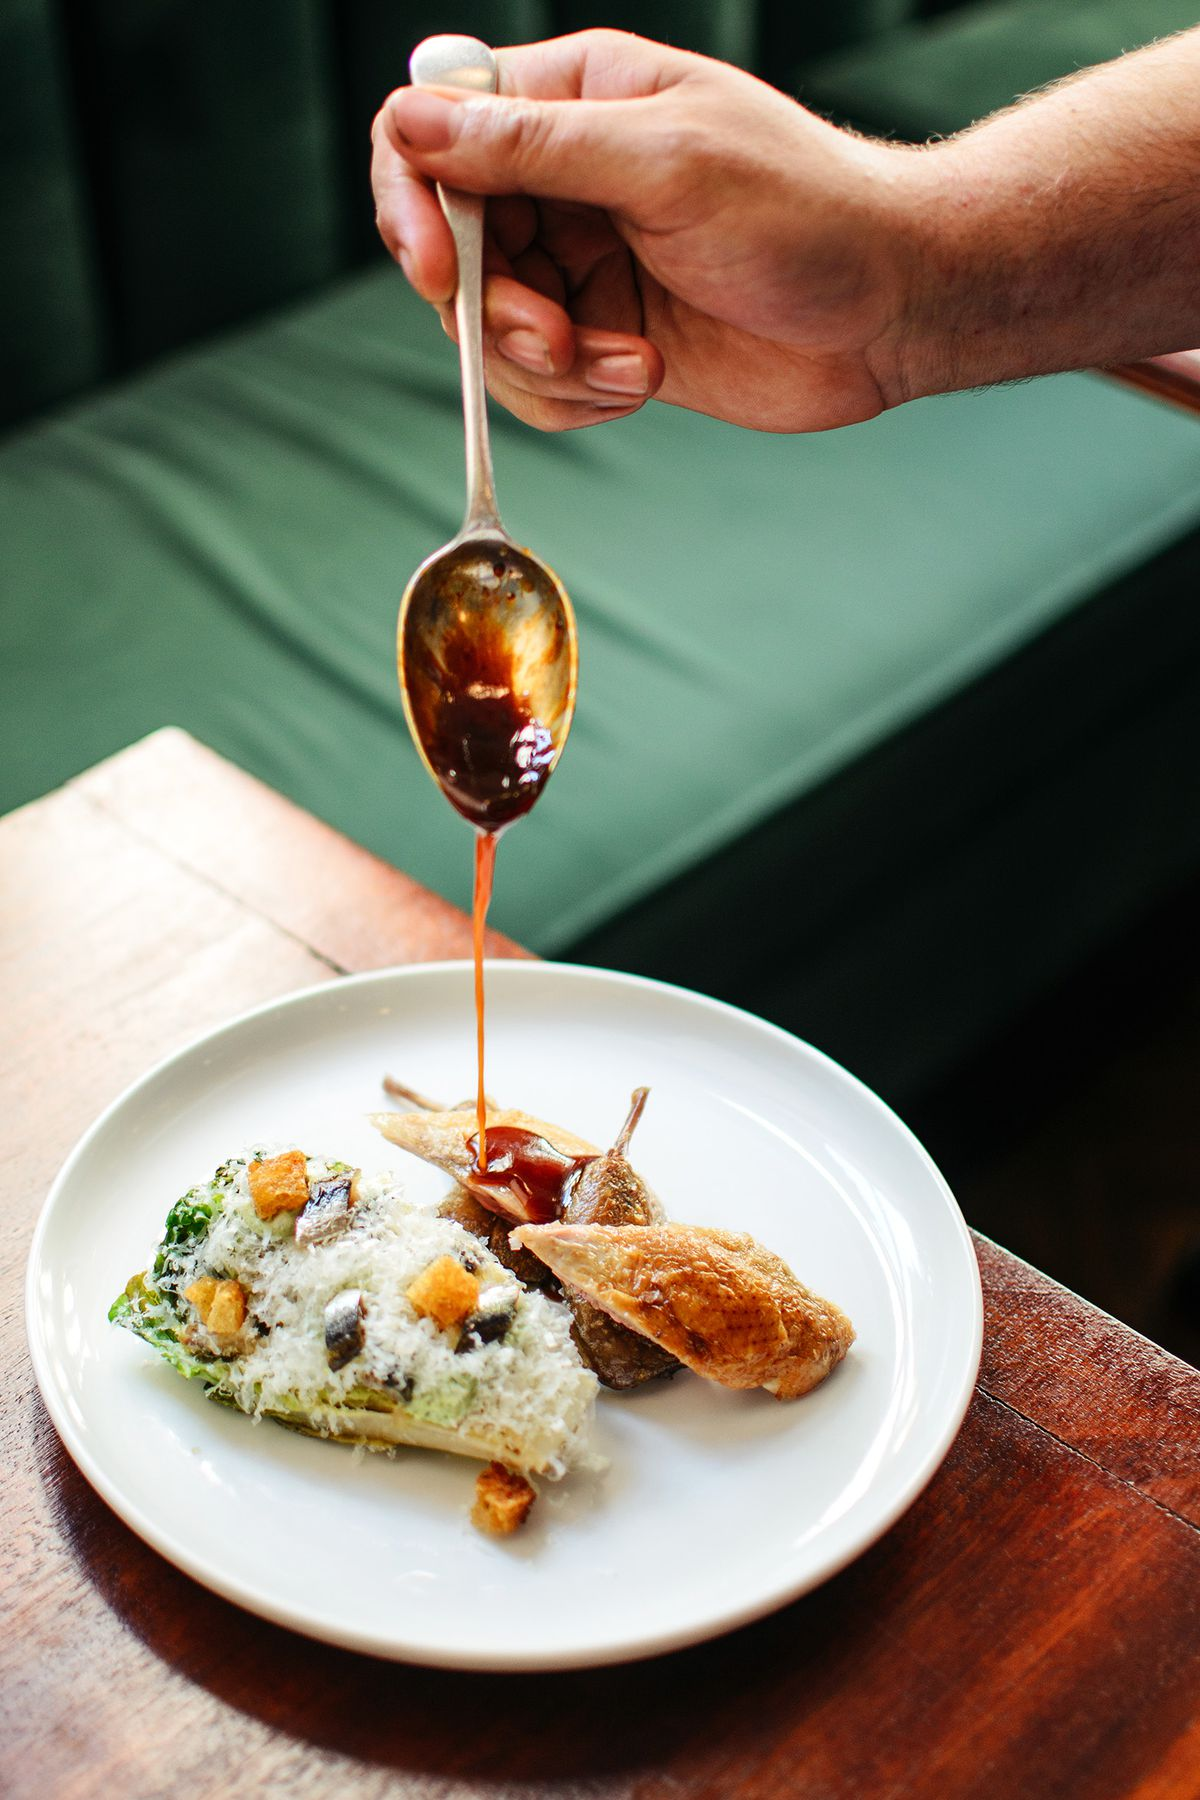 Sauce poured on to the quail caesar salad at Cora Pearl, a new London restaurant in Covent Garden